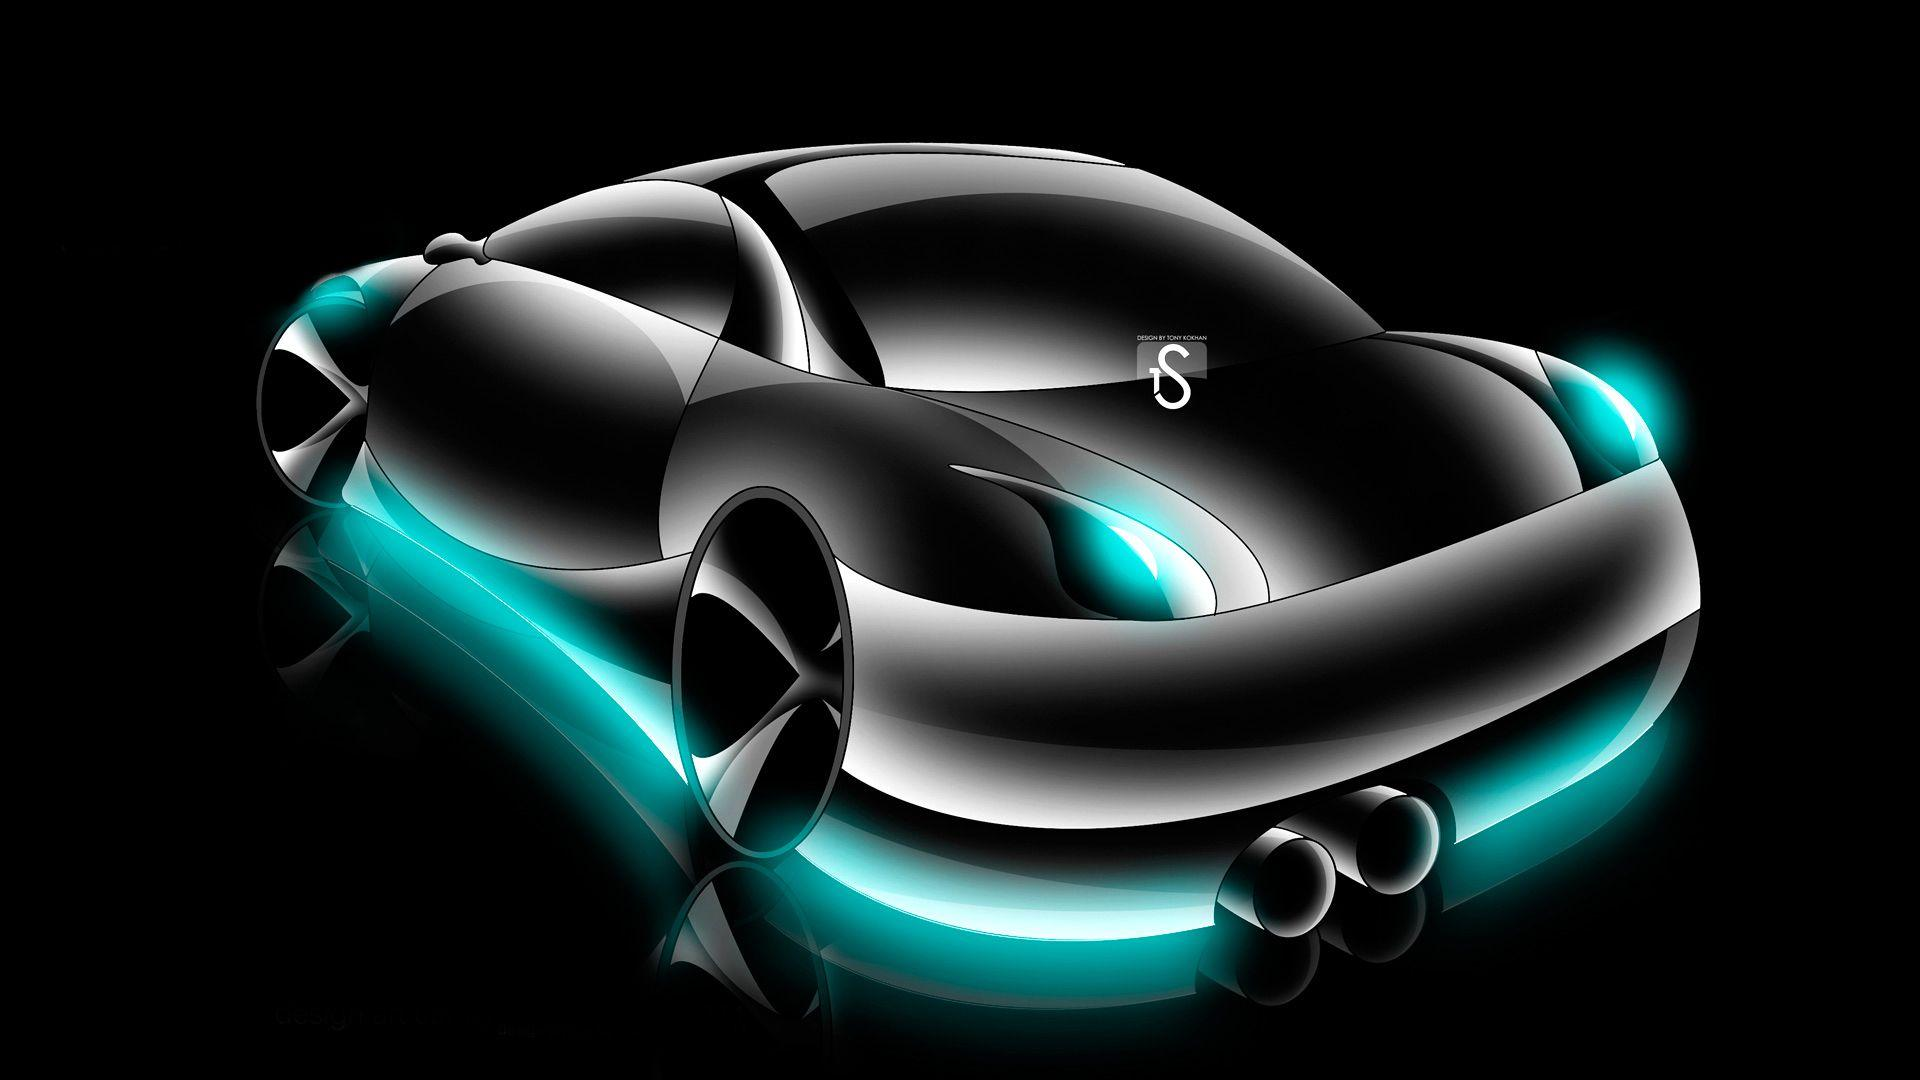 Neon Car Wallpapers - Wallpaper Cave